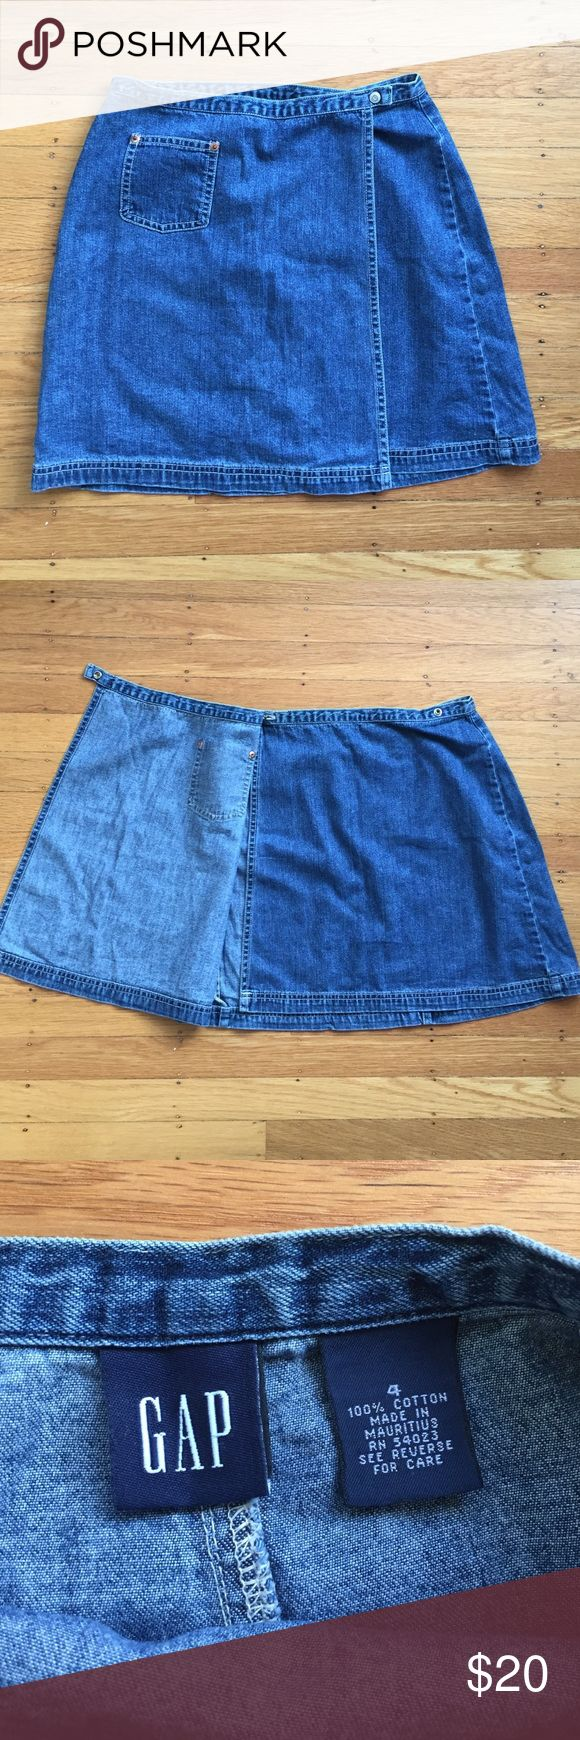 90's GAP skirt High waisted skirt from the 90's! In great condition. Size 4 GAP Skirts Mini